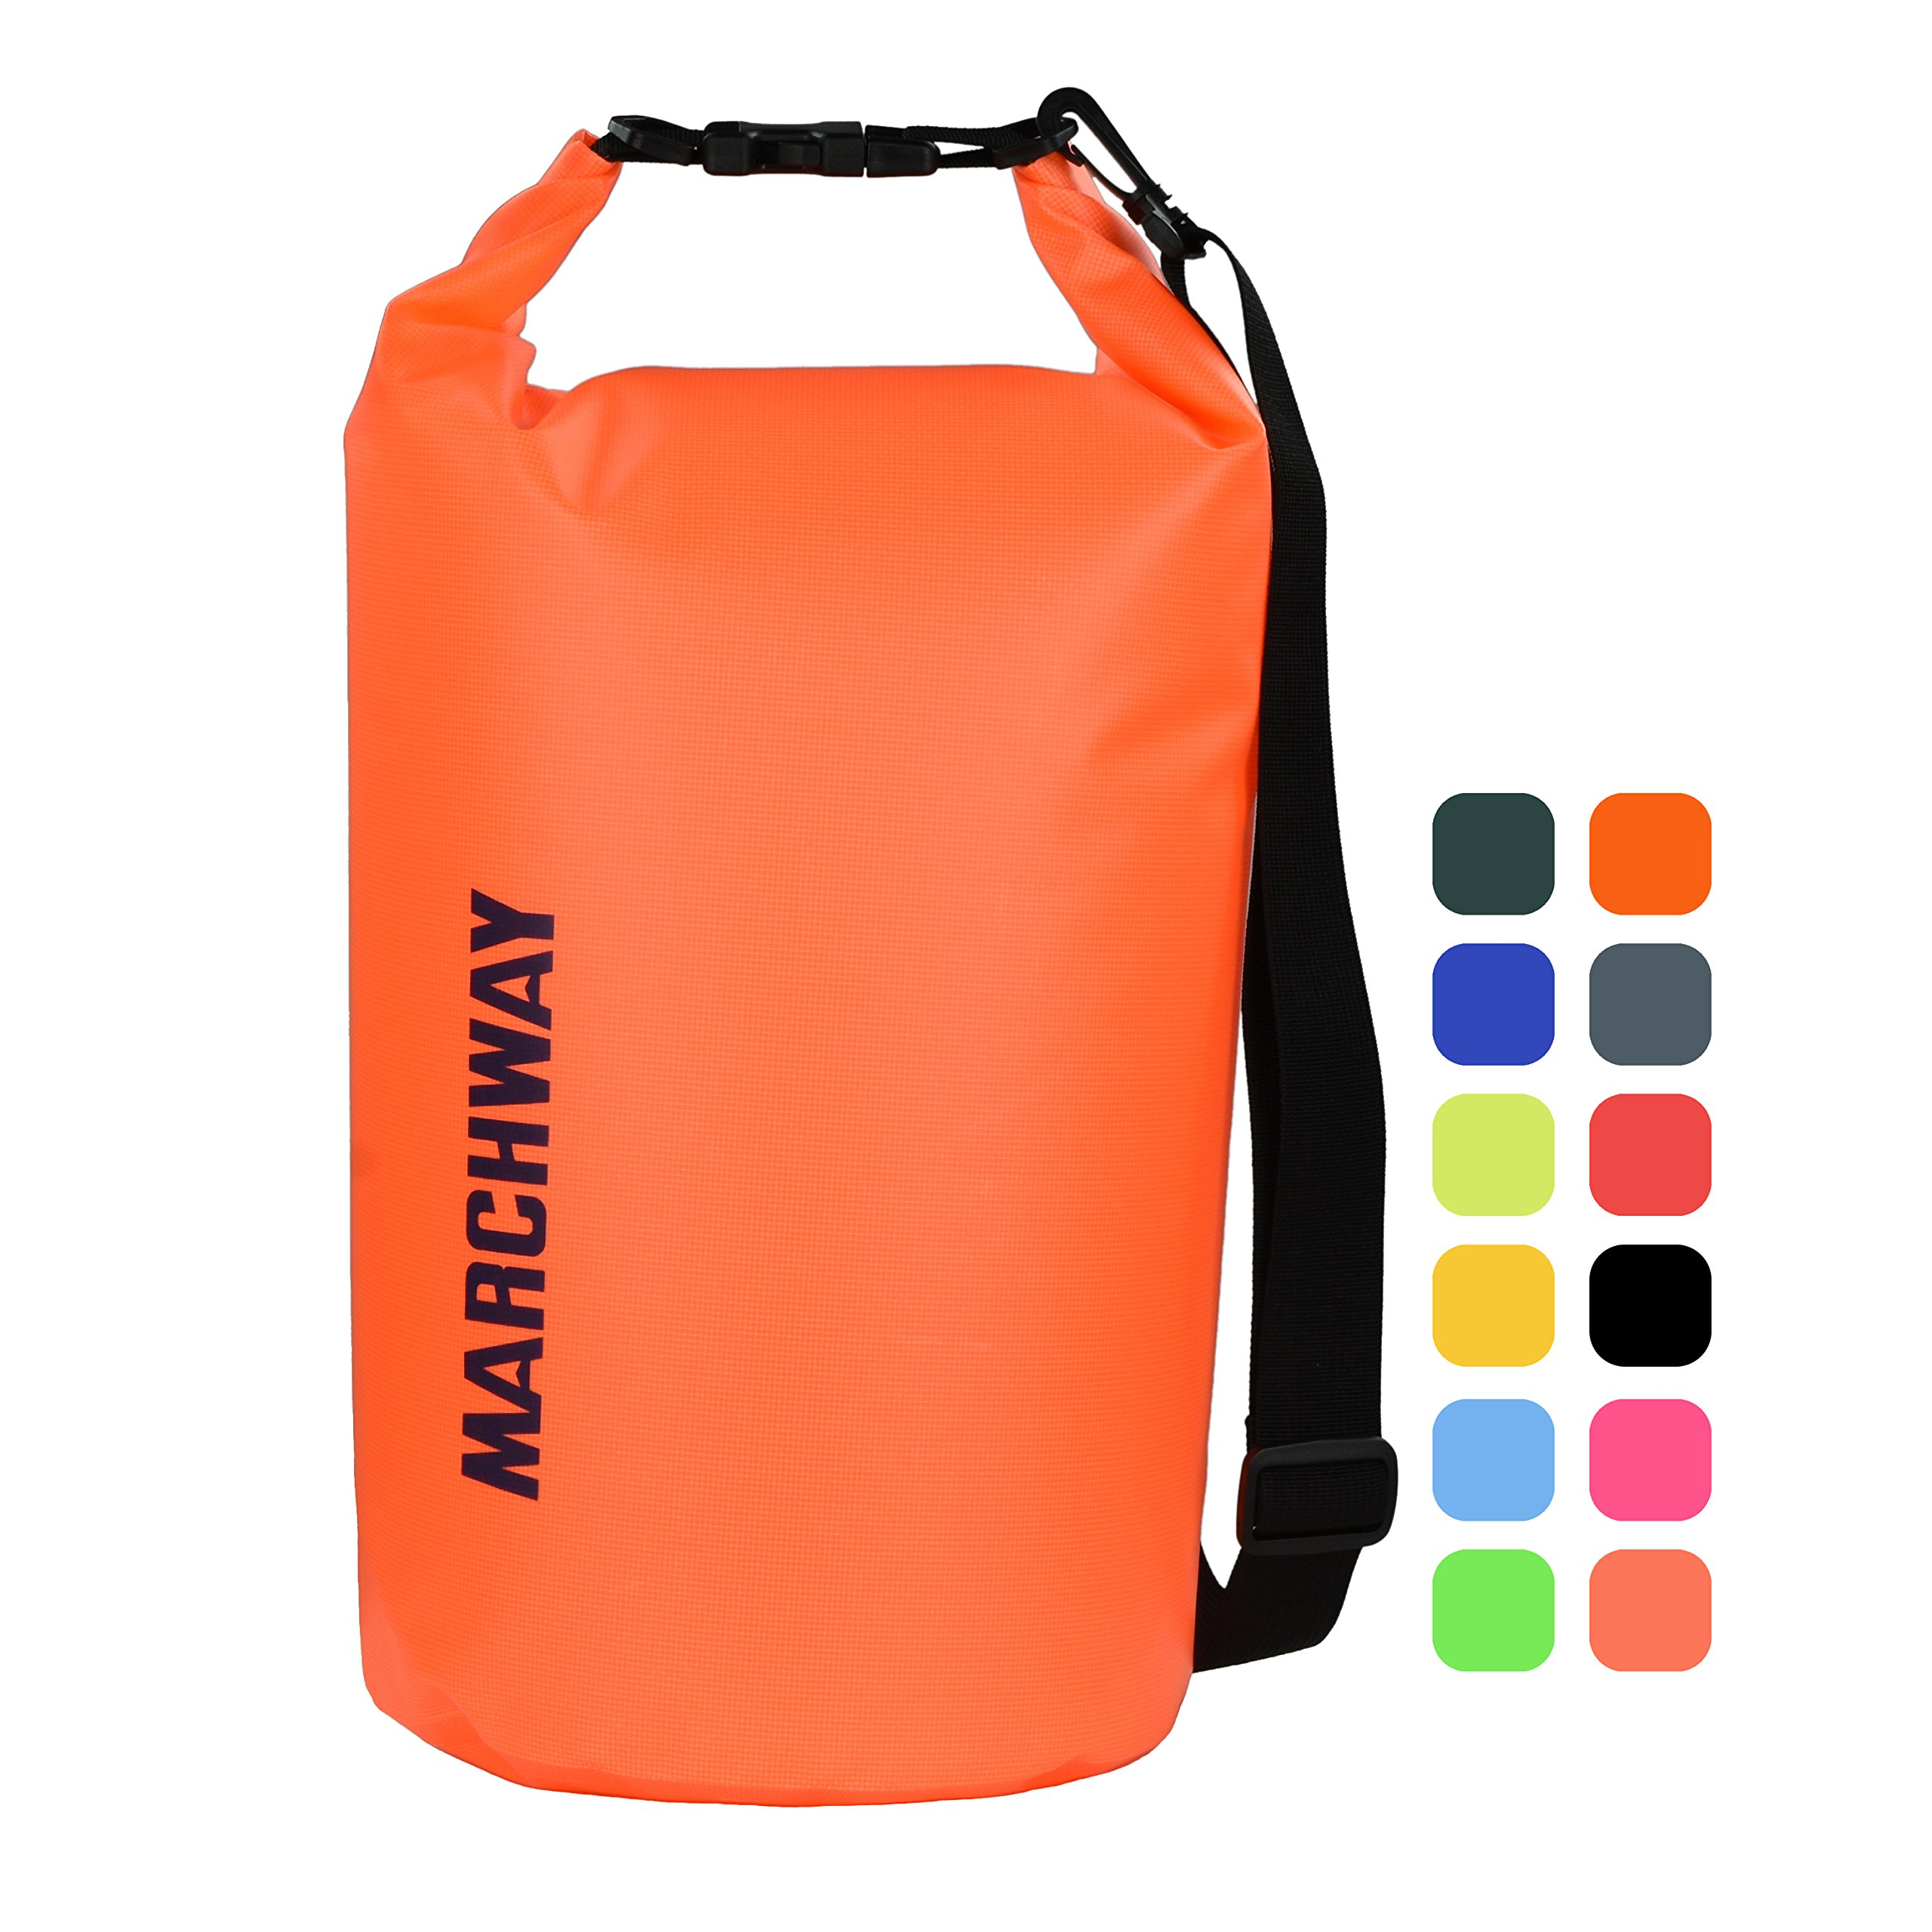 MARCHWAY Floating Waterproof Dry Bag 5L/10L/20L/30L/40L, Roll Top Sack Keeps Gear Dry for Kayaking, Rafting, Boating, Swimming, Camping, Hiking, Beach, Fishing (Orange, 40L) by MARCHWAY